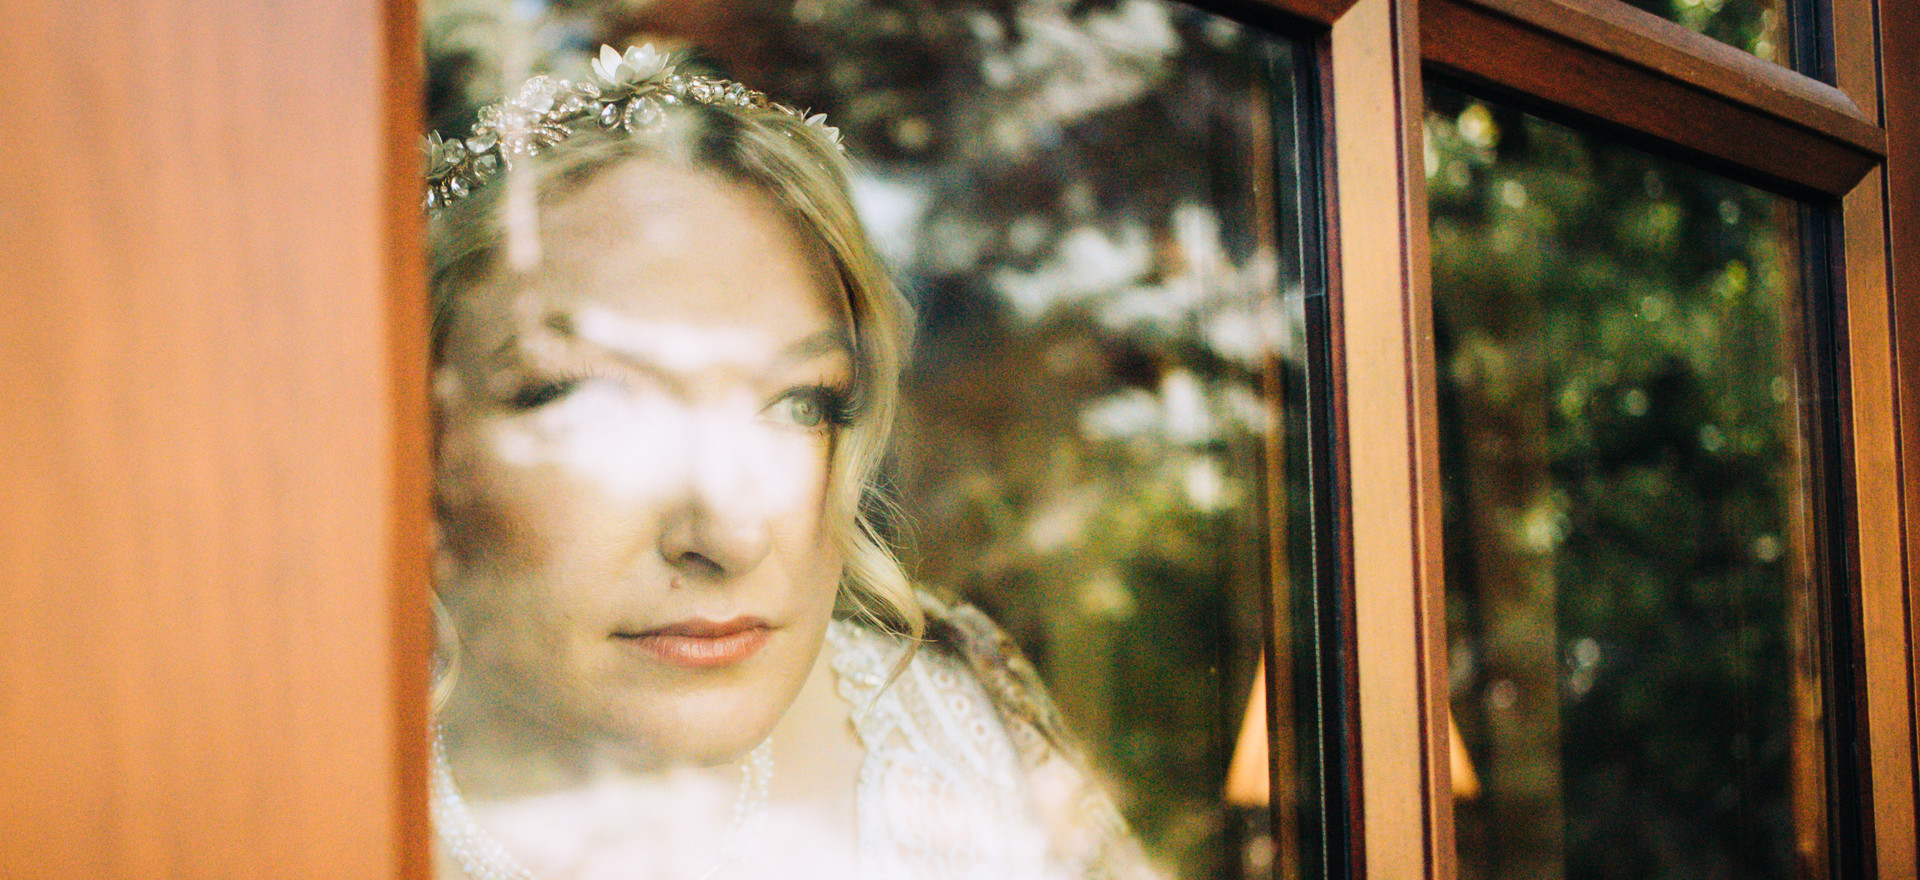 Sarah through the glass, anticipating the day